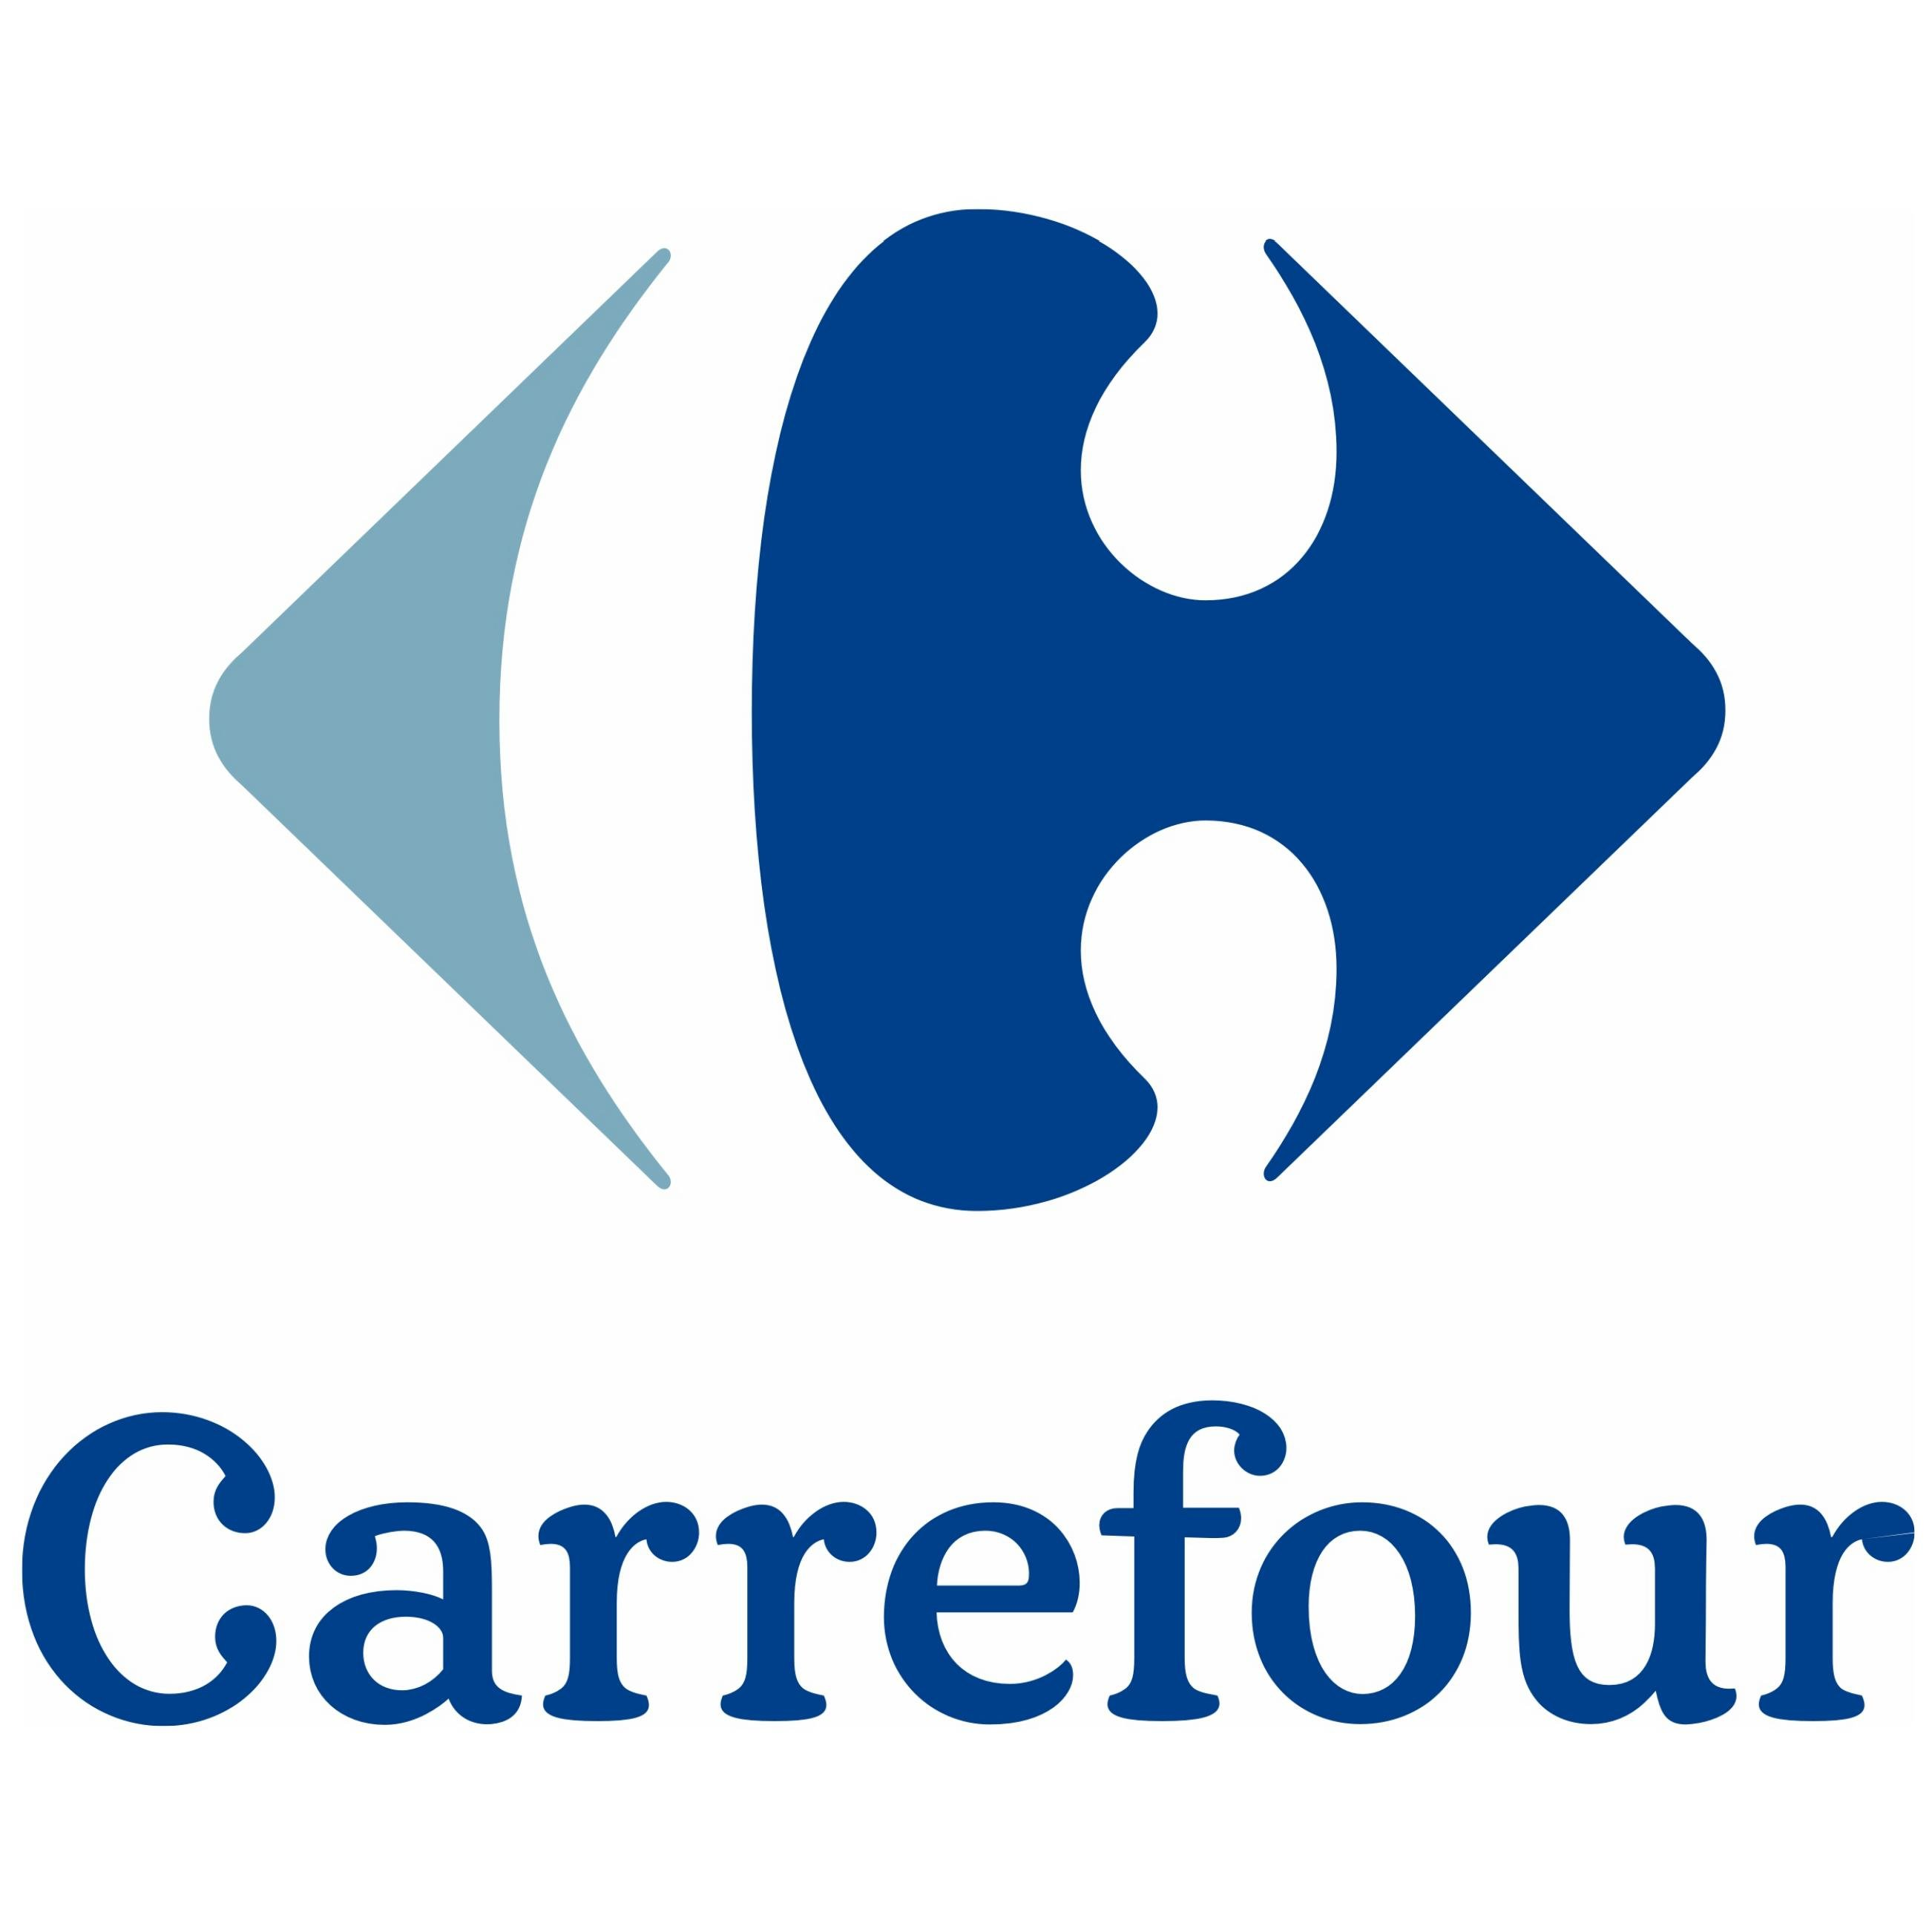 Carrefour Group Logo [EPS-PDF Files] Vector EPS Free Download, Logo, Icons, Brand Emblems